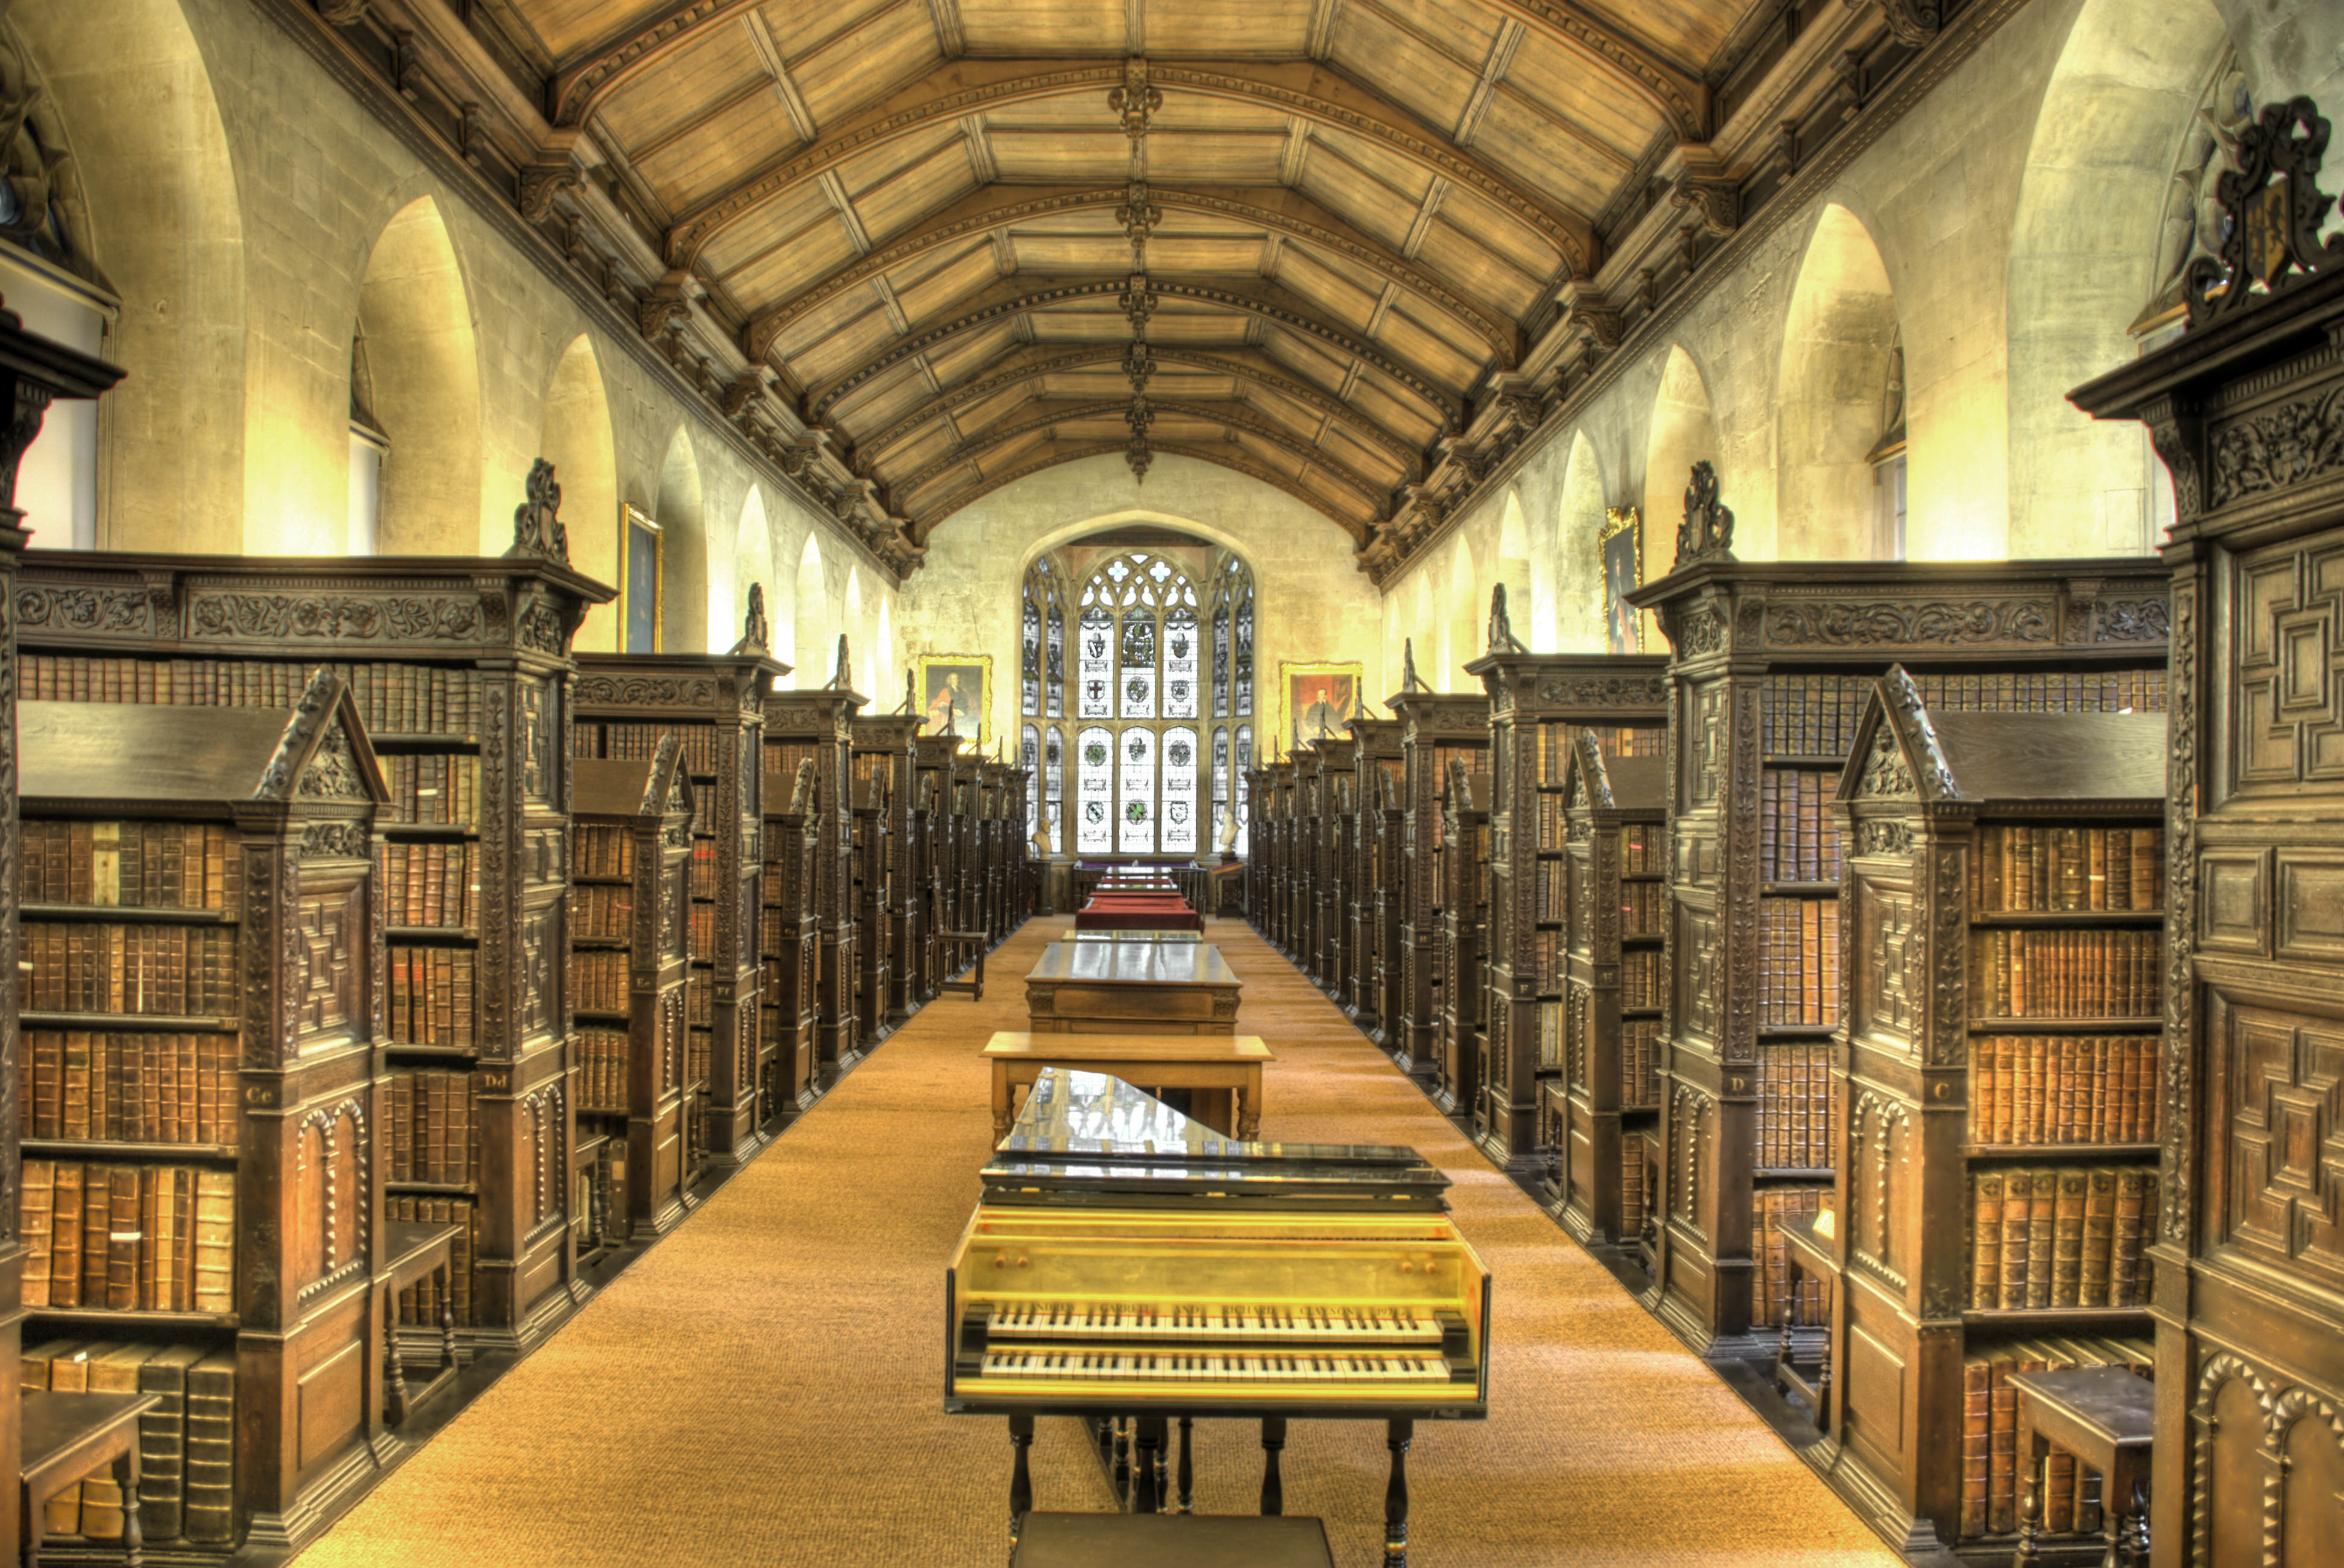 Wealthy Graduates Earn £8,000 More Than Poorer Ones, Report Reveals St Johns College Old Library interior